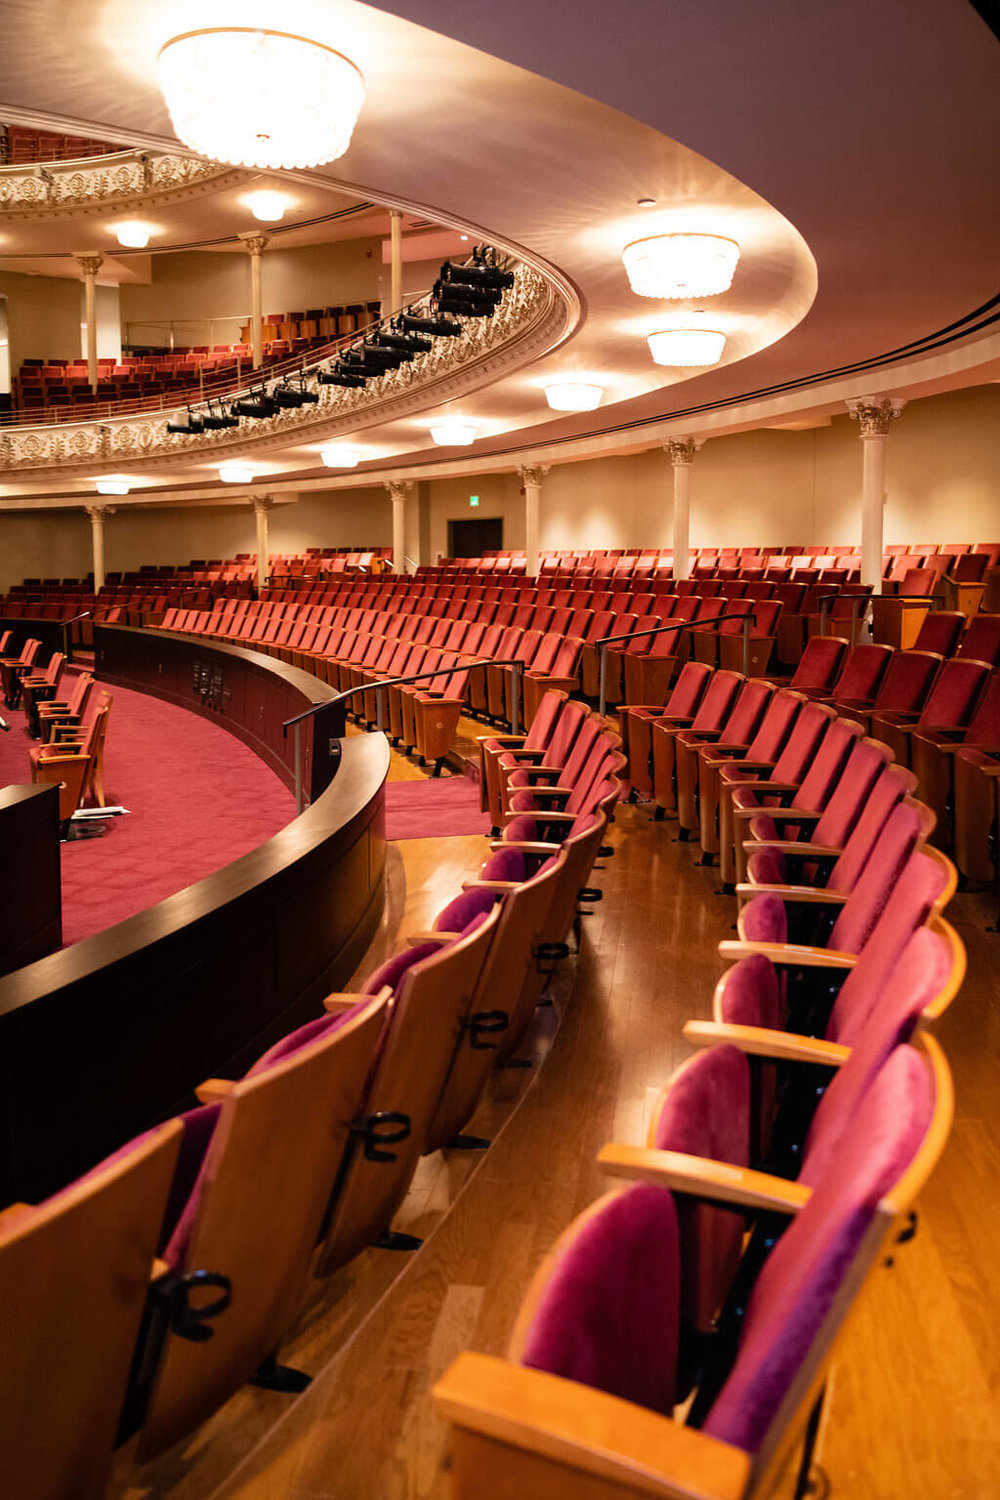 Take your seat - Enter Springer Auditorium and find wider, cushiony seats with added legroom, ensuring comfort during even the longest of sings. (We're looking at you, Herr Wagner.) Plus, many seating rows have been elevated to optimize views of the stage.